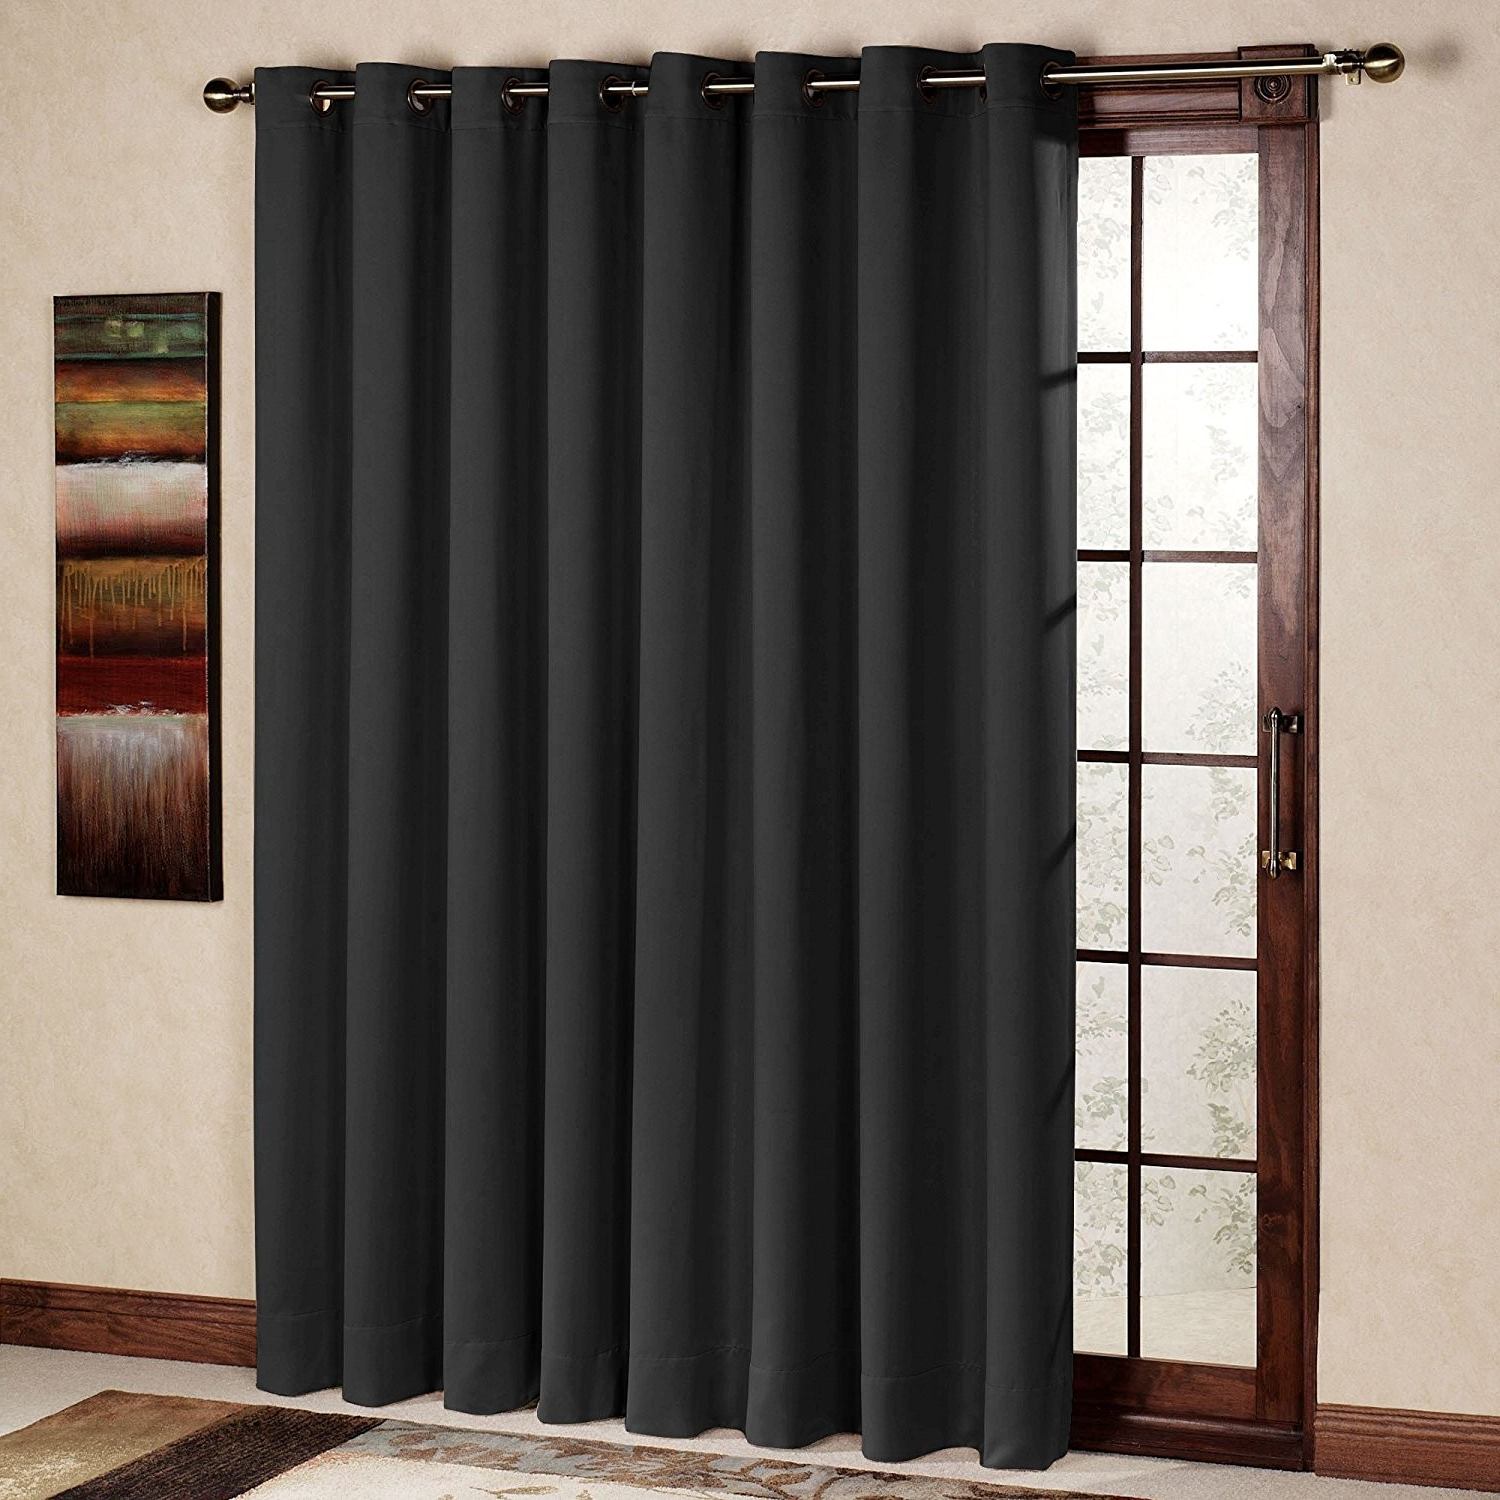 Antique Silver Grommet Top Thermal Insulated Blackout Curtain Panel Pairs Within Favorite Rhf Wide Thermal Blackout Patio Door Curtain Panel, Sliding (View 19 of 20)